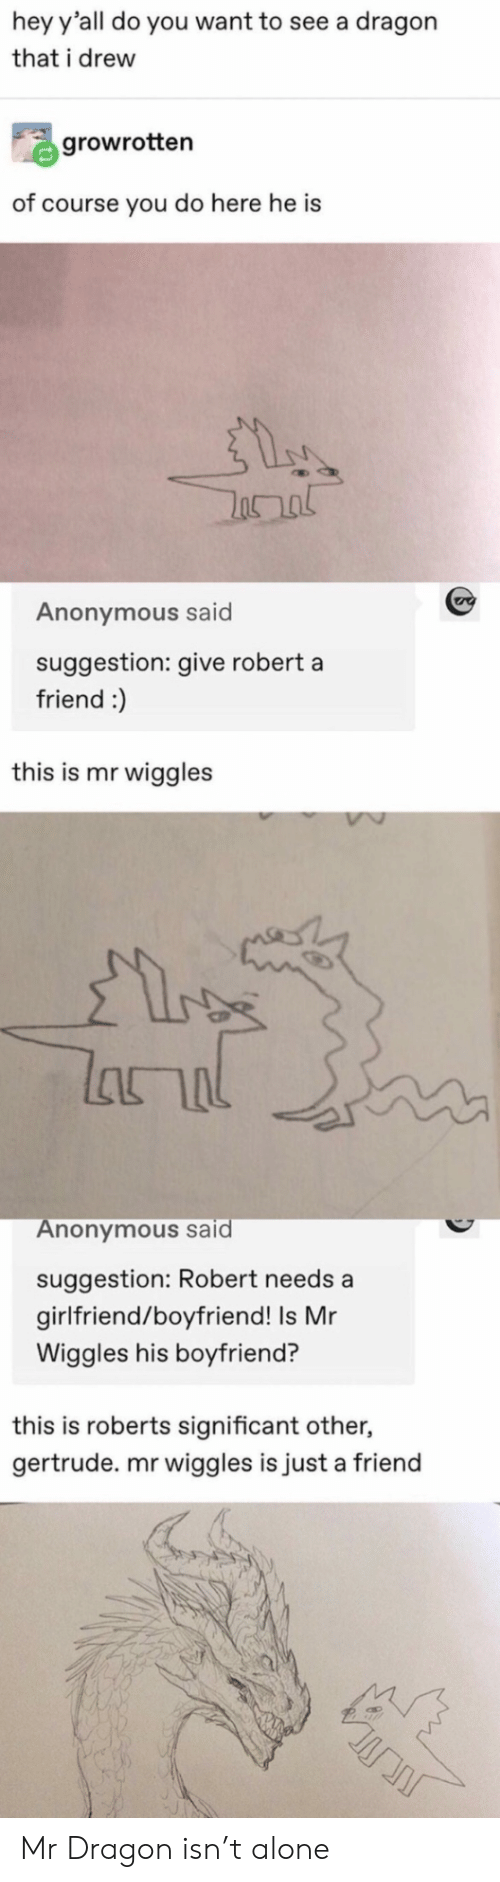 roberts: hey y'all do you want to see a dragon  that i drew  growrotten  of course you do here he is  Anonymous said  suggestion: give robert a  friend :)  this is mr wiggles  lhור  Anonymous said  suggestion: Robert needs a  girlfriend/boyfriend! Is Mr  Wiggles his boyfriend?  this is roberts significant other,  gertrude. mr wiggles is just a friend Mr Dragon isn't alone